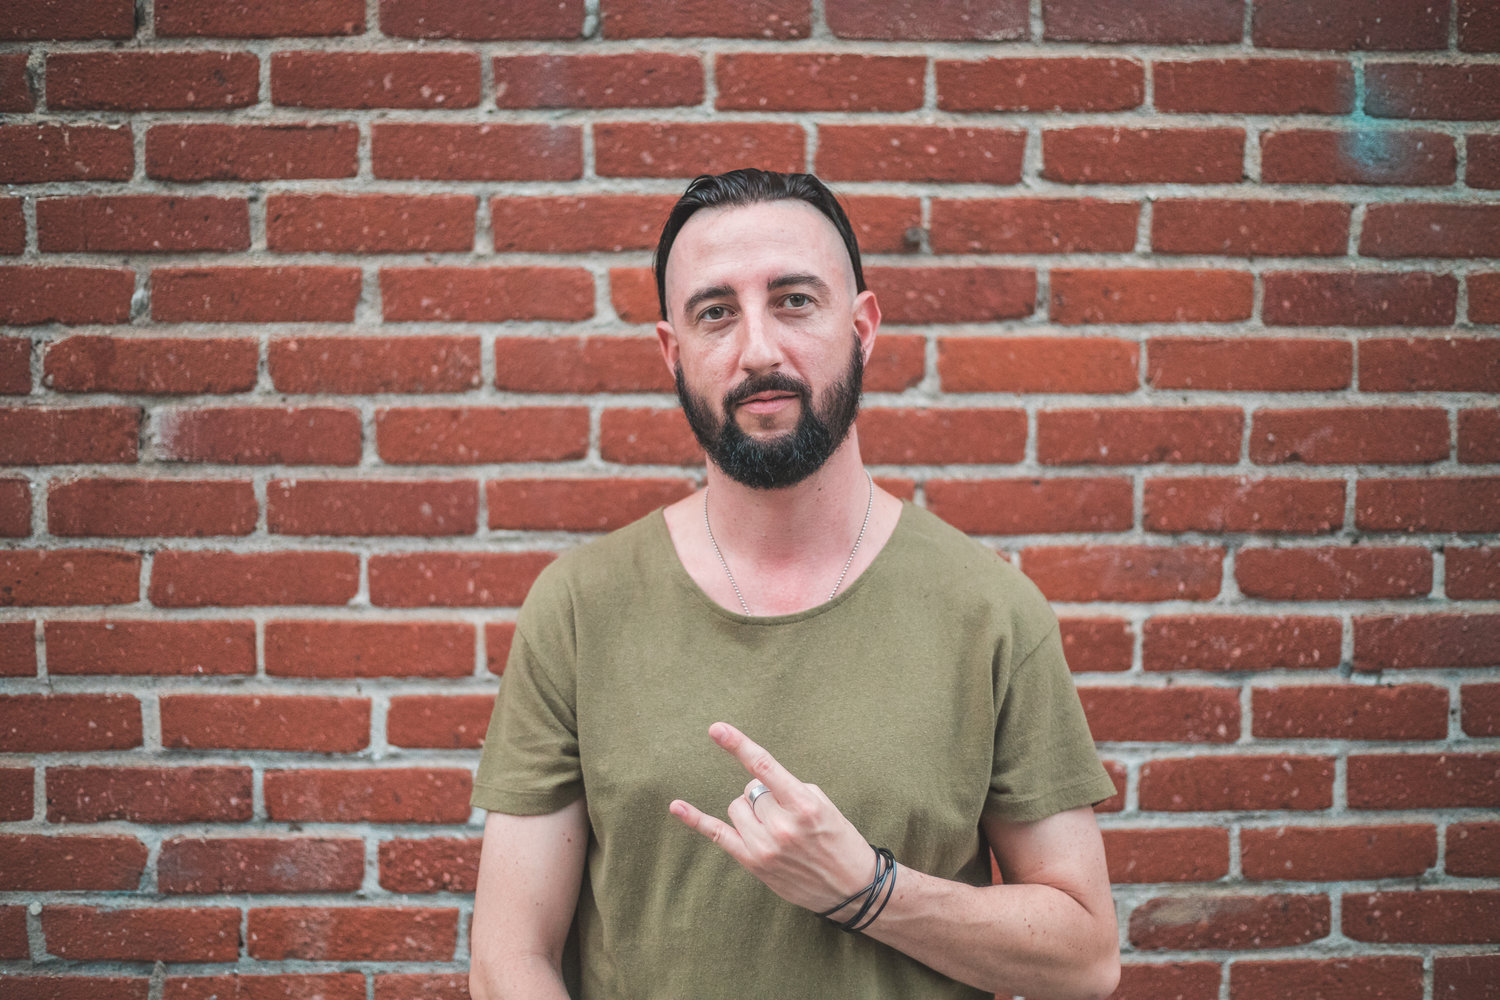 ESCOBAR - Escobaris an electronic music DJ and Producer based out of Southern California. His musical tastes favor the experimental sounds found in heavy electronic music as well as the melodies of progressive dance music. A philosophy to